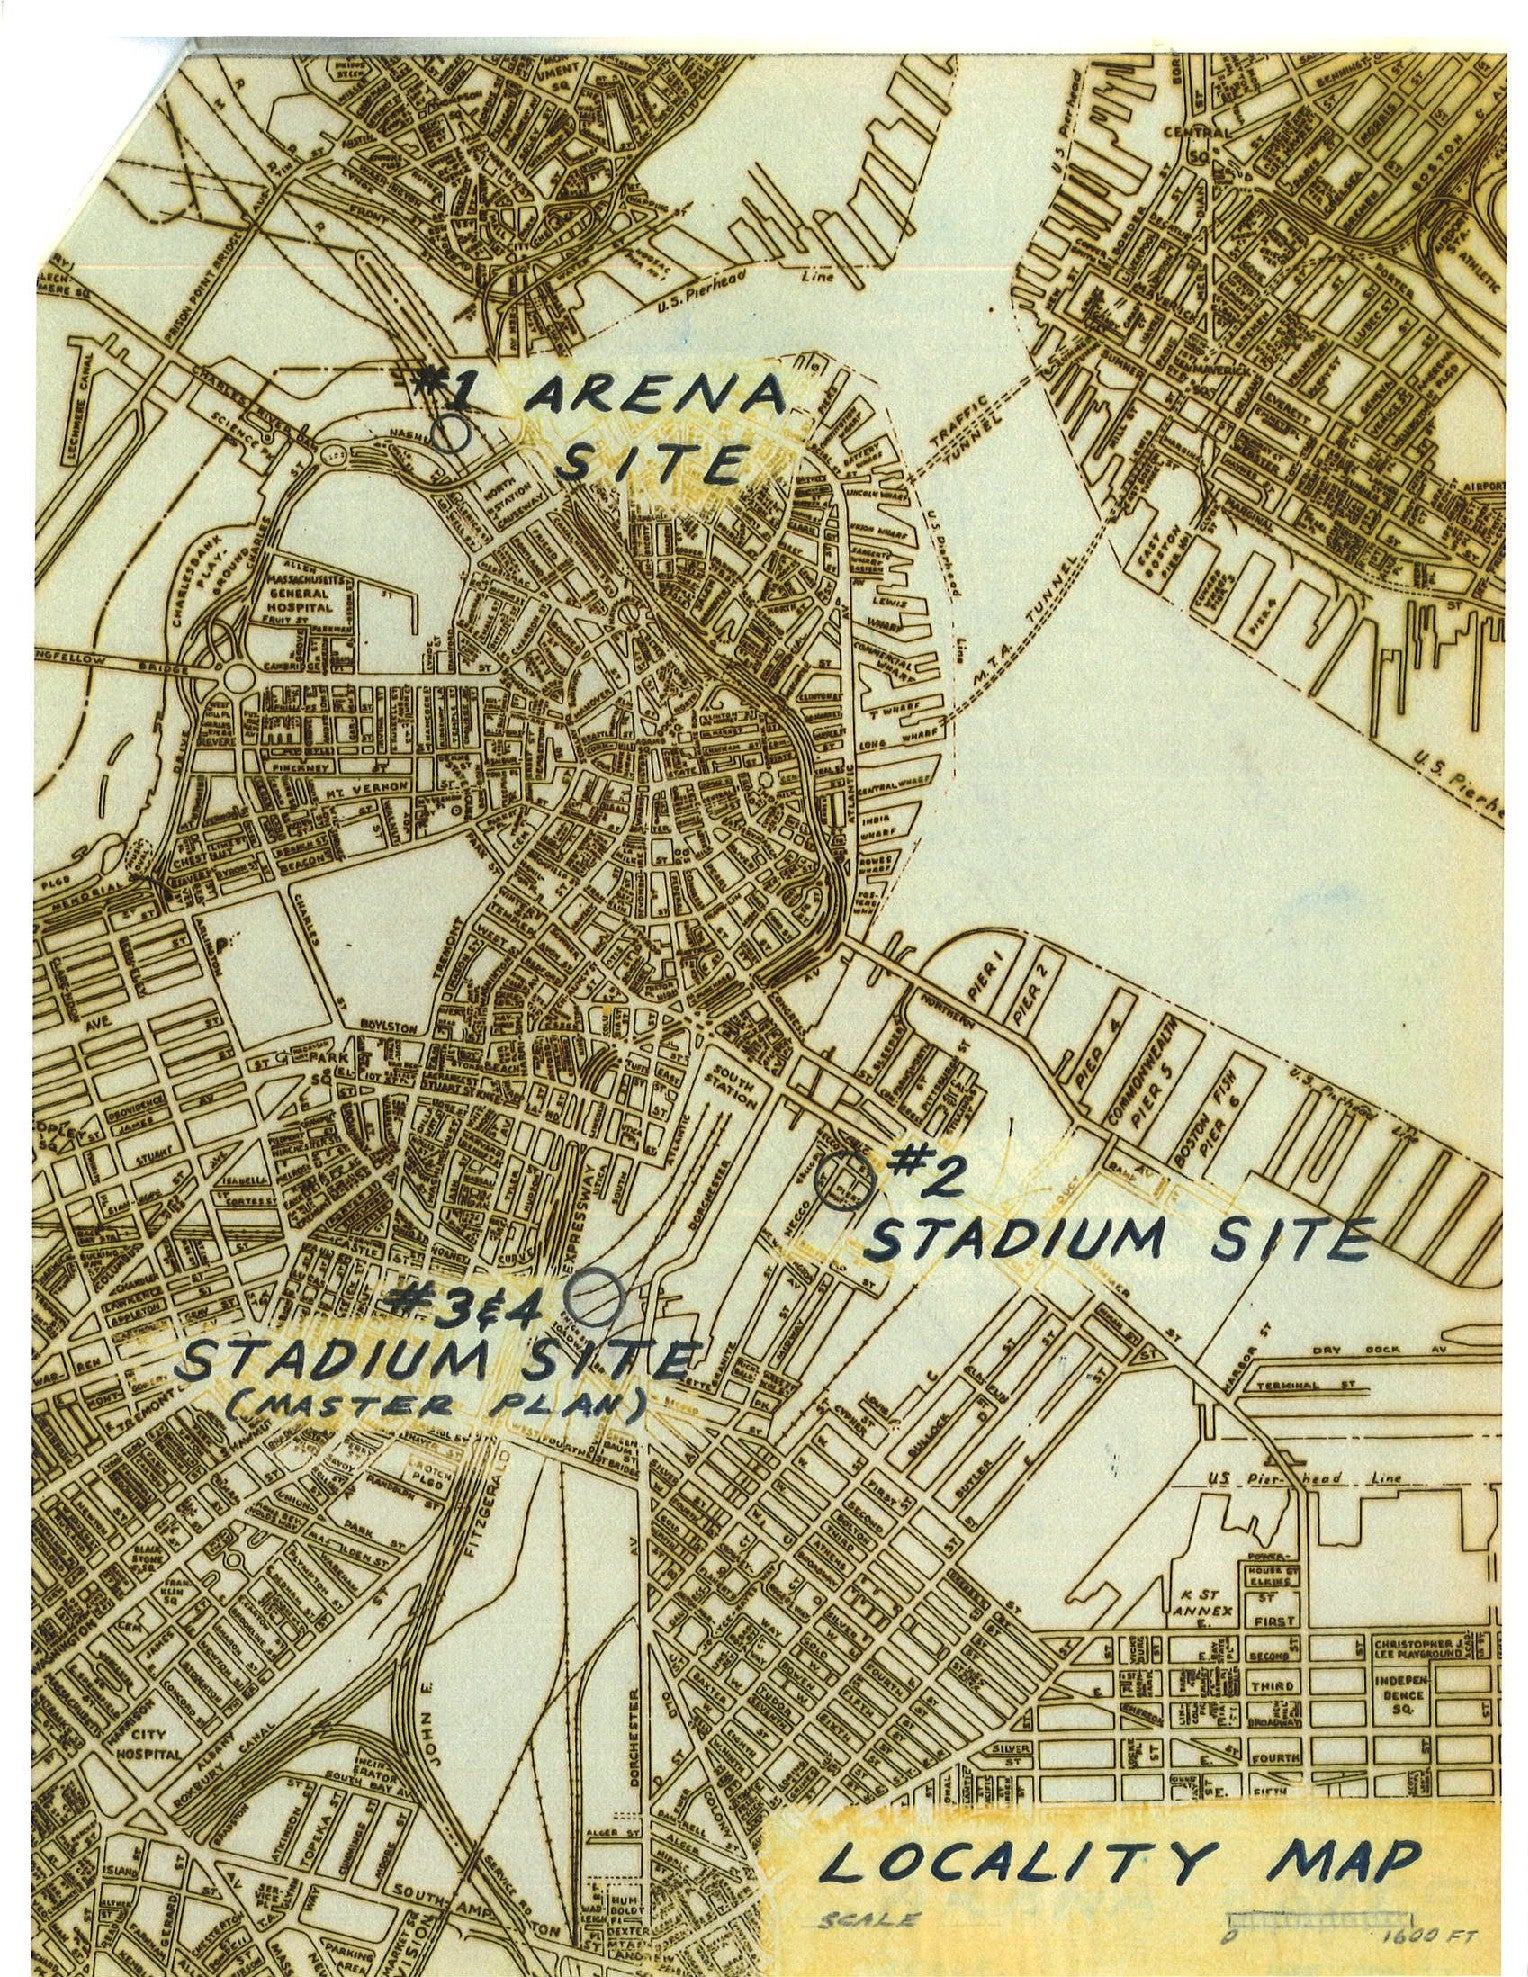 A map from the BRA's 1966 plan to replace the Boston Garden and build a football stadium near South Station.